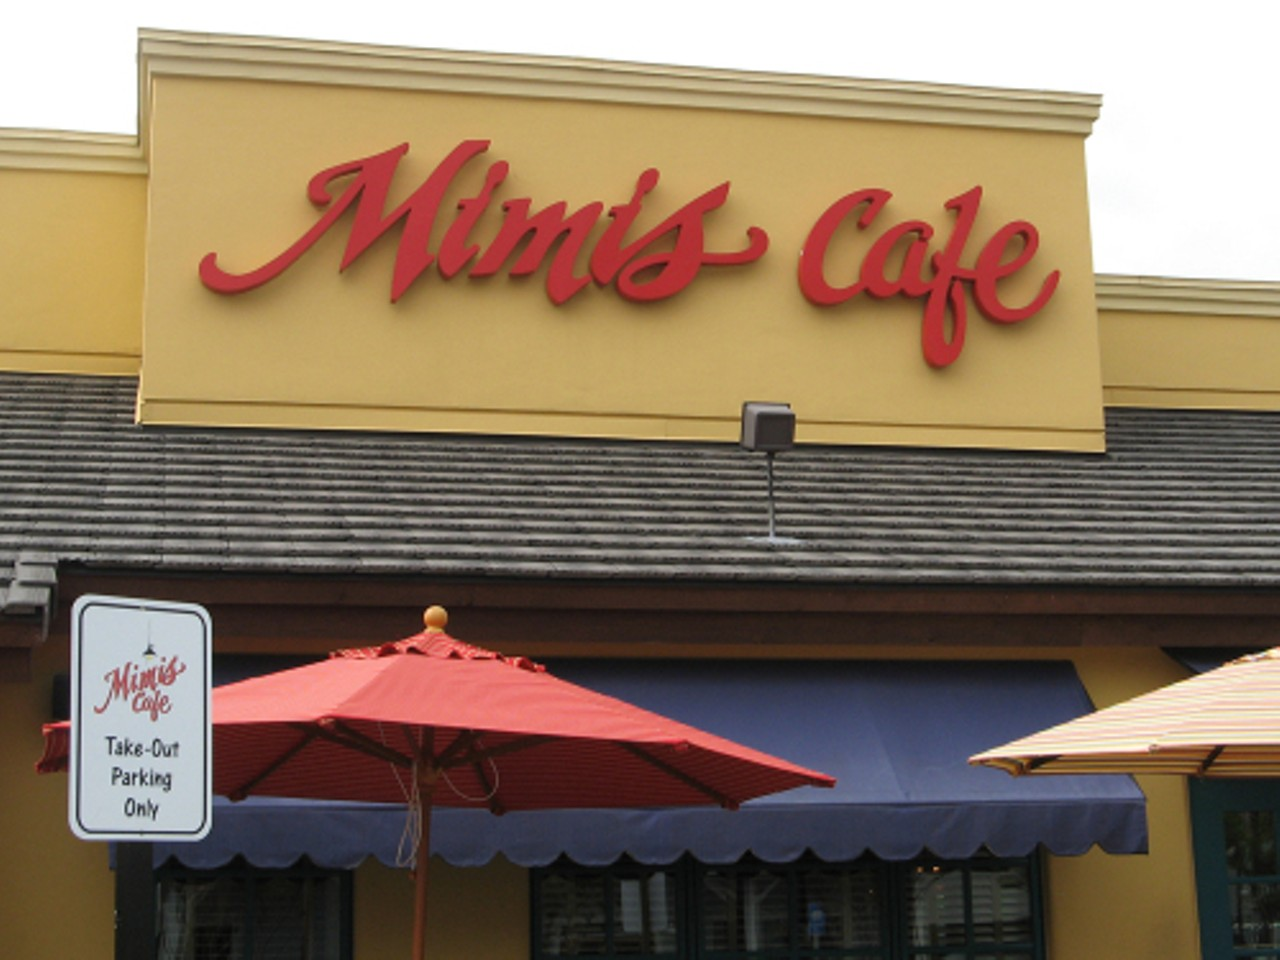 Mimis cafe mission valley